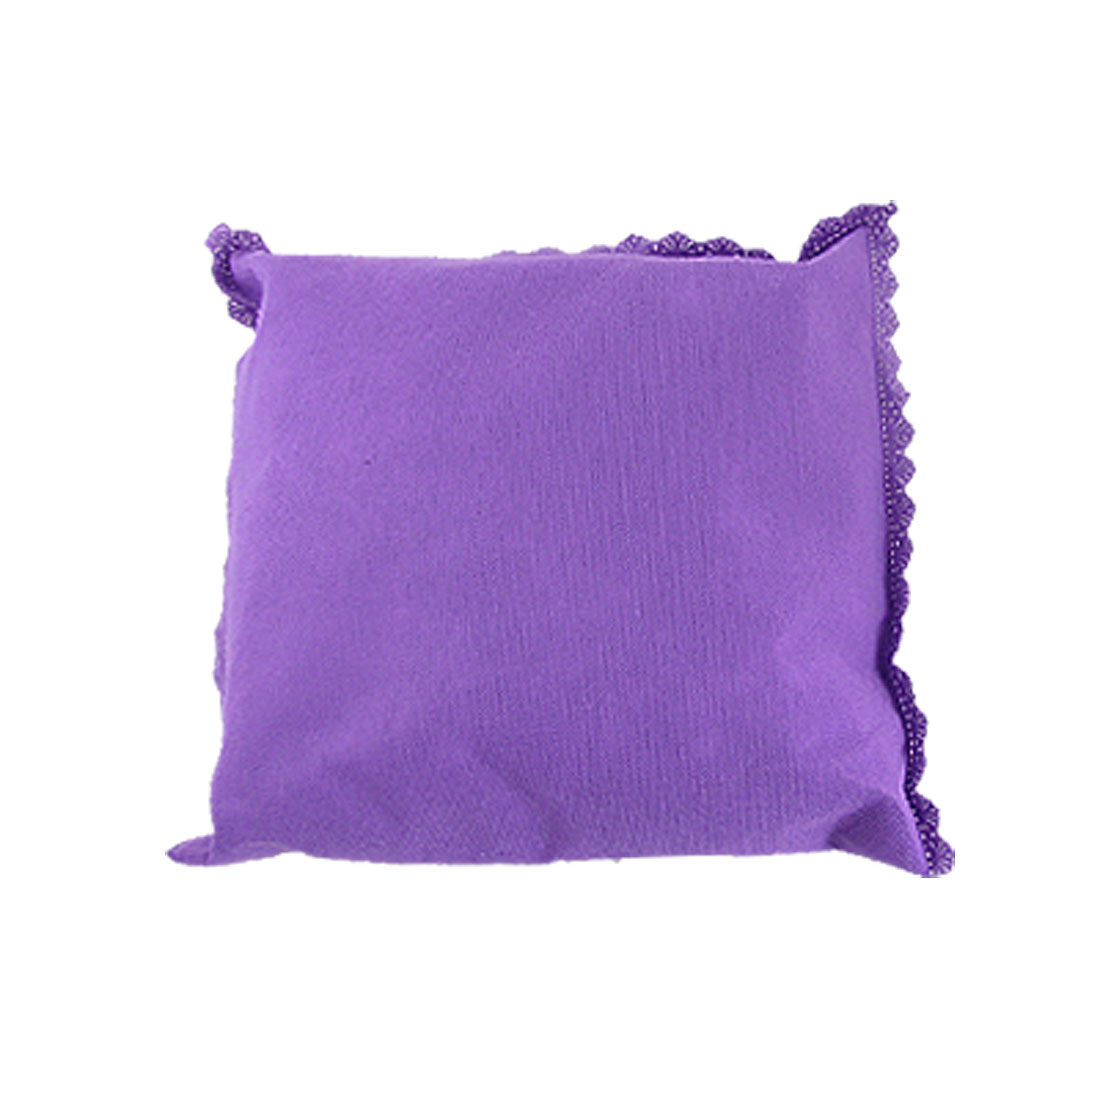 Purple Car Air Deodorant Bamboo Charcoal Package Bag